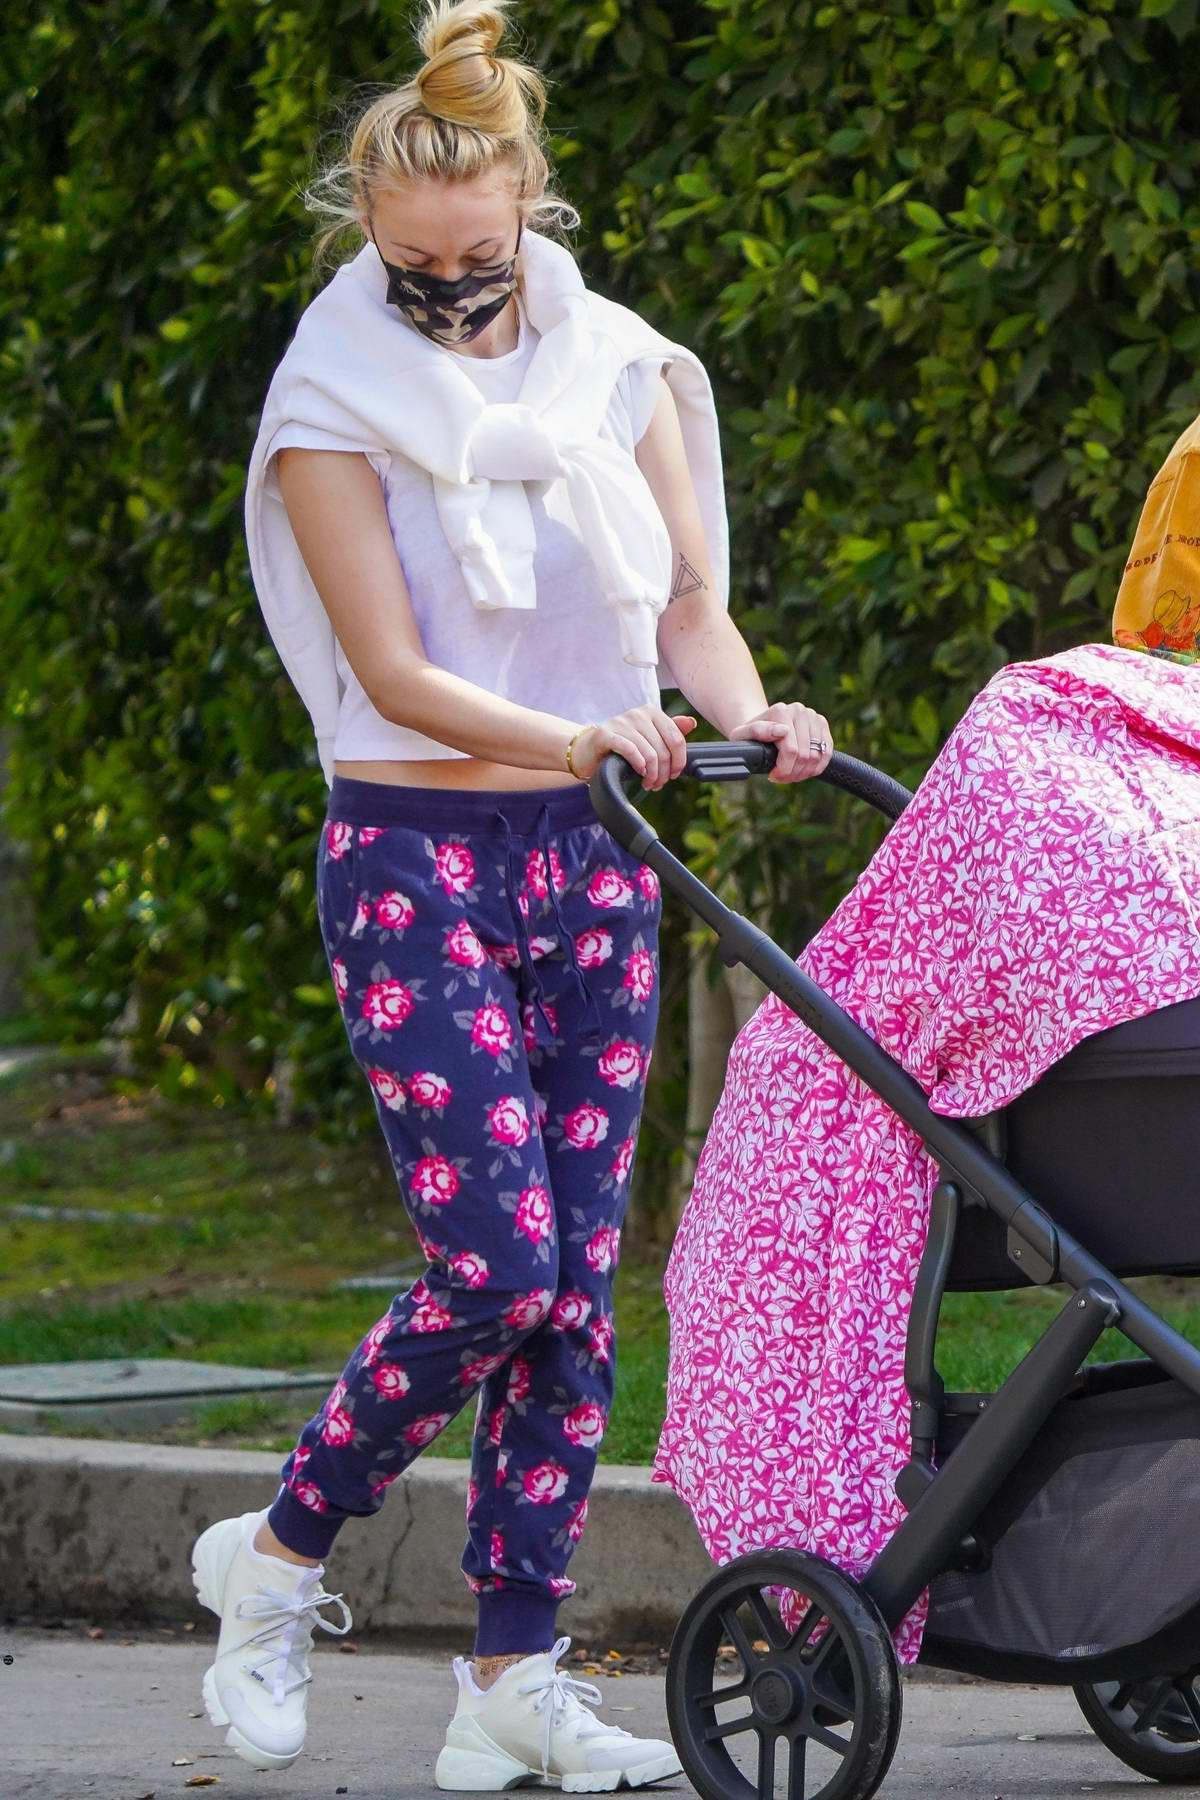 Sophie Turner steps out in cute pajamas while taking a walk with Joe Jonas and their baby in Los Angeles